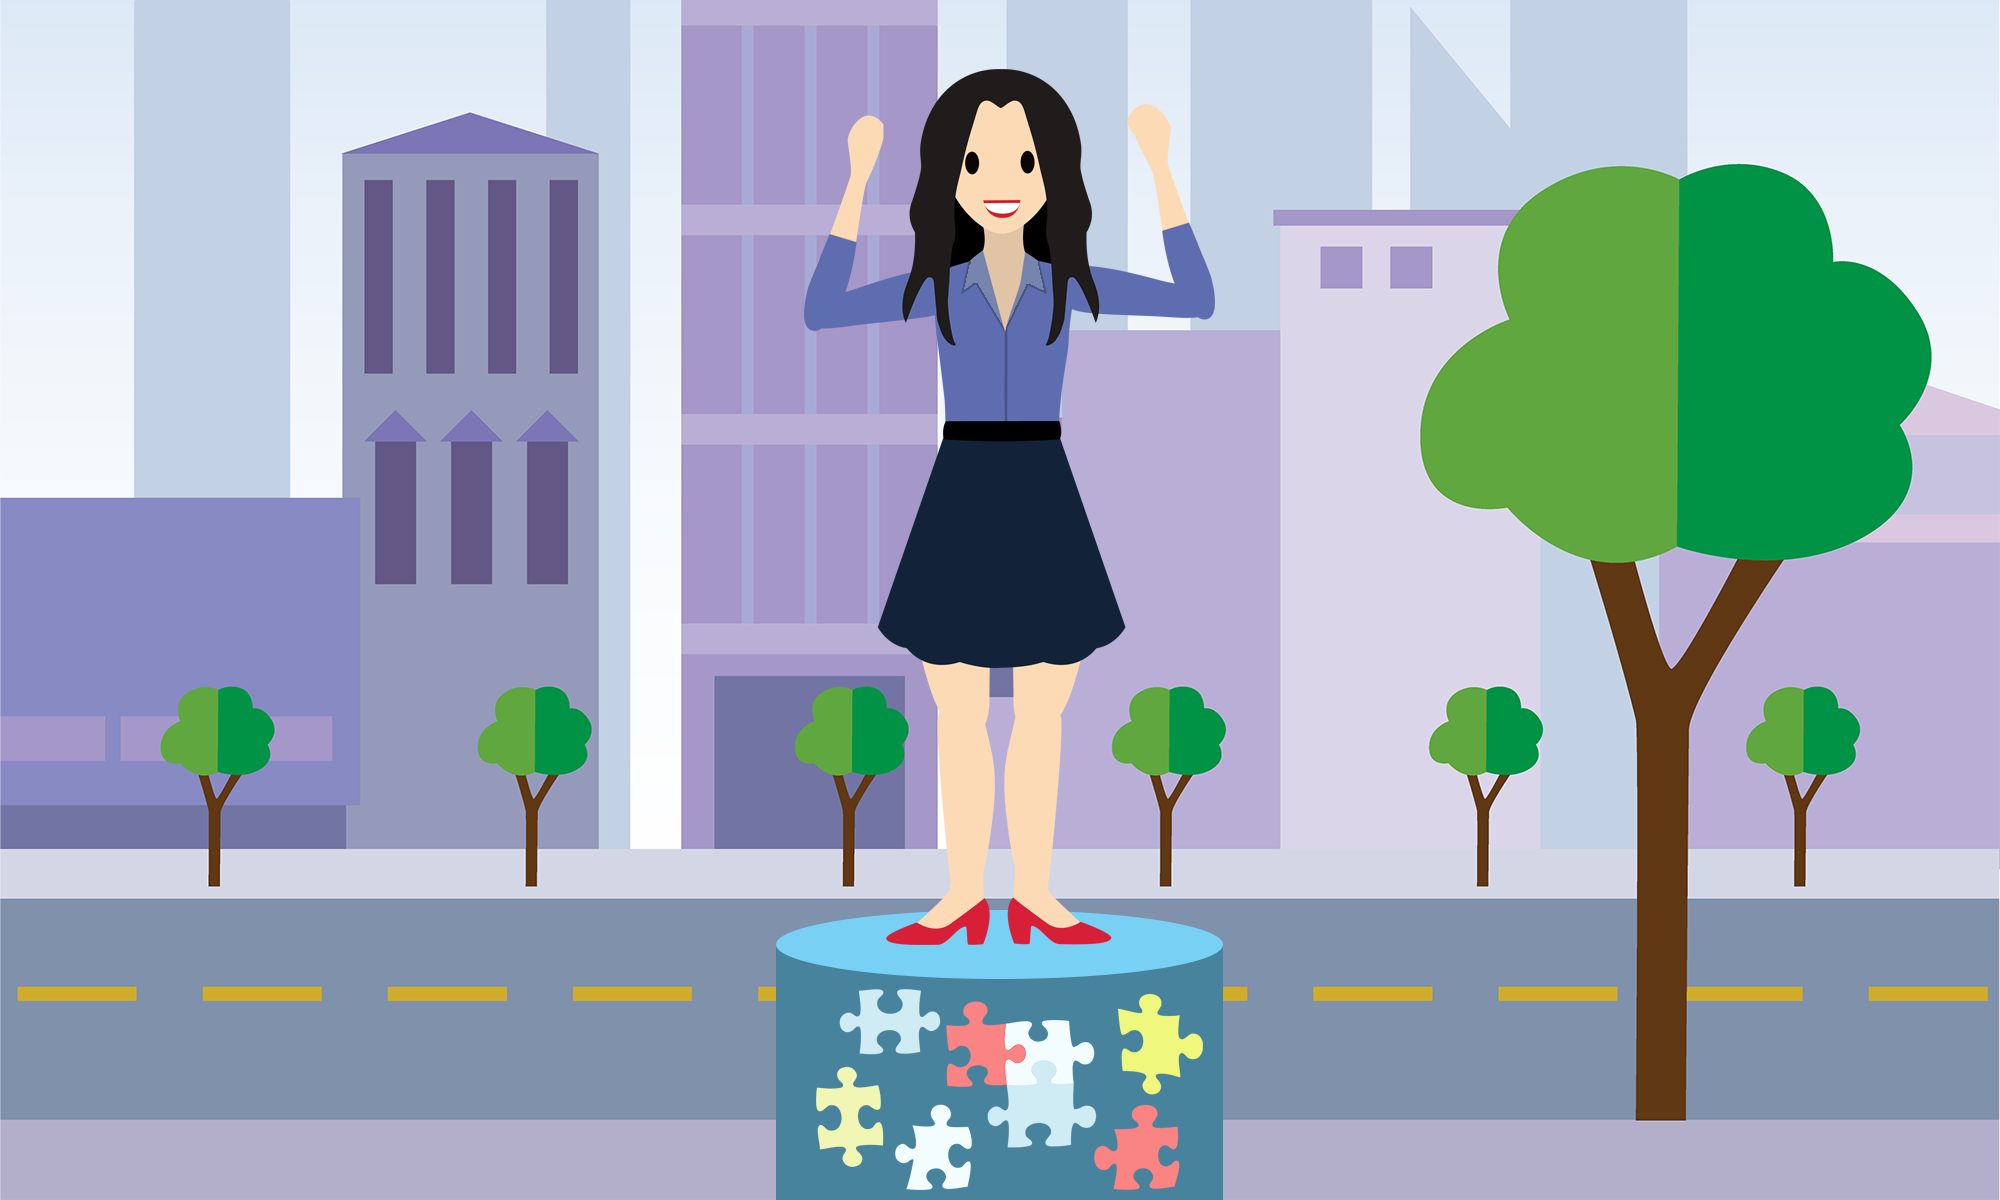 Image woman standing on pedestal with puzzle pieces.